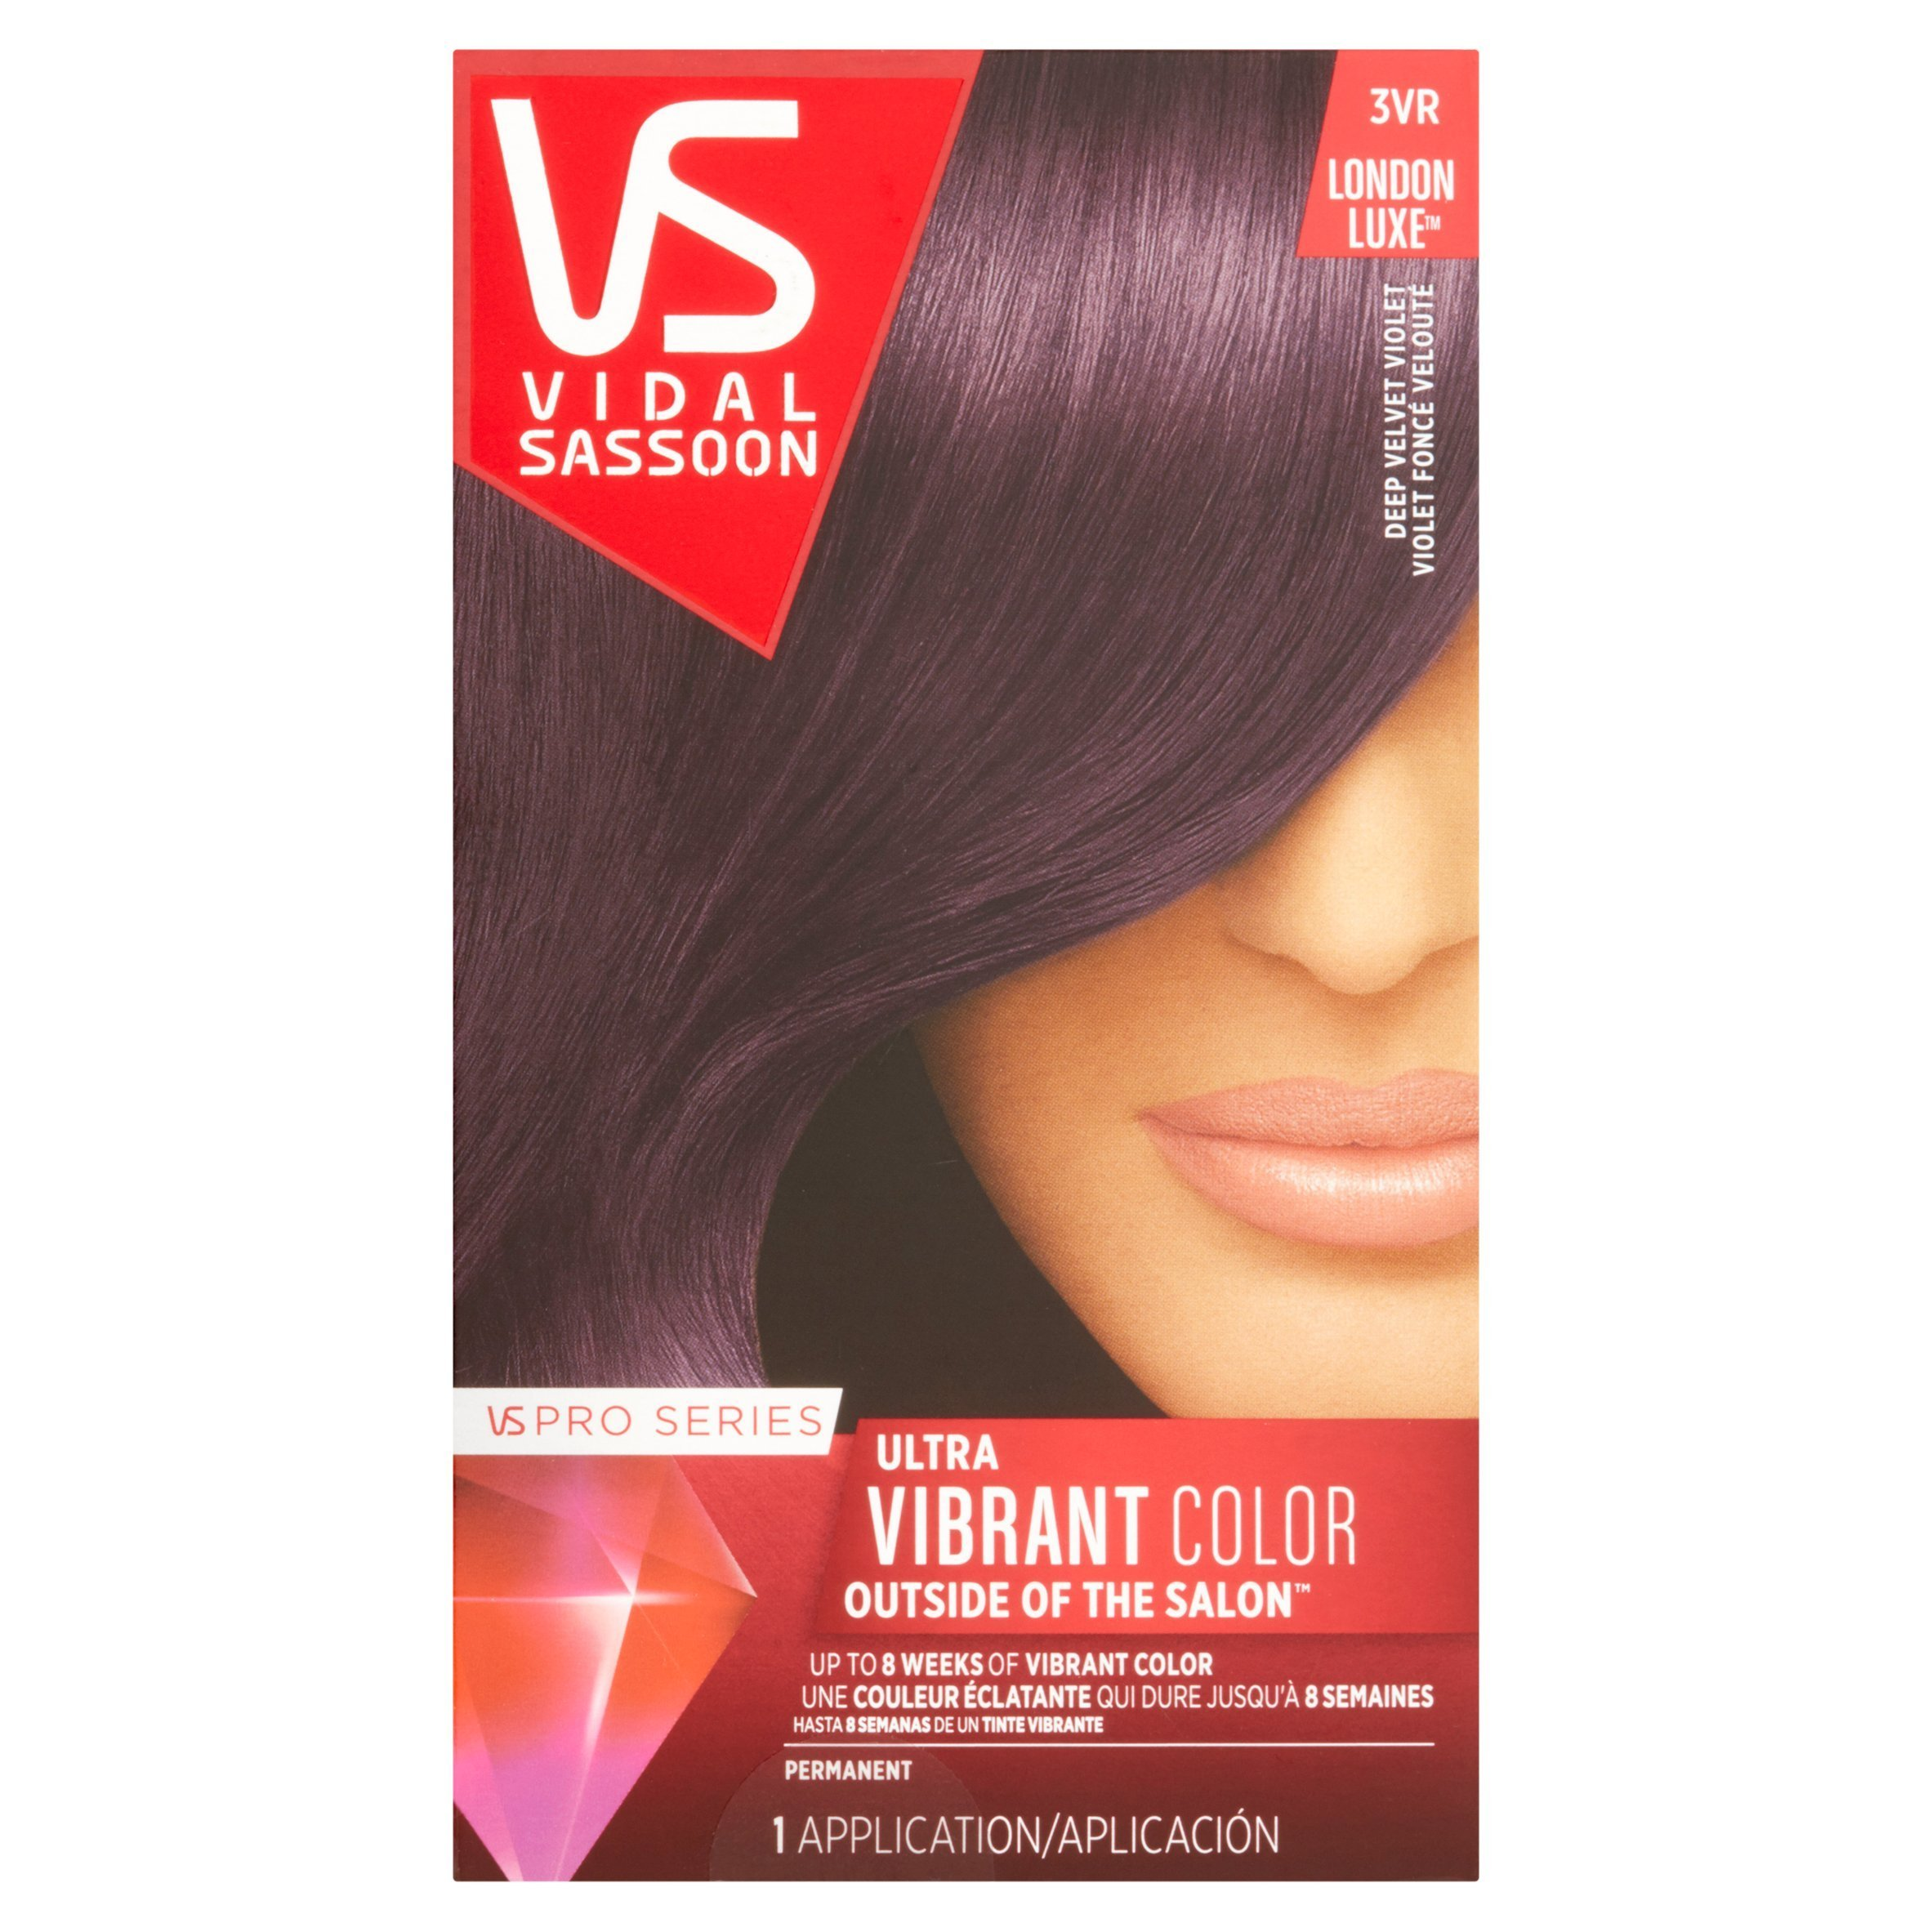 The Best Vidal Sassoon Pro Series Ultra Vibrant Color 3Vr Deep Velvet Violet Hair Color 1 Application Pictures